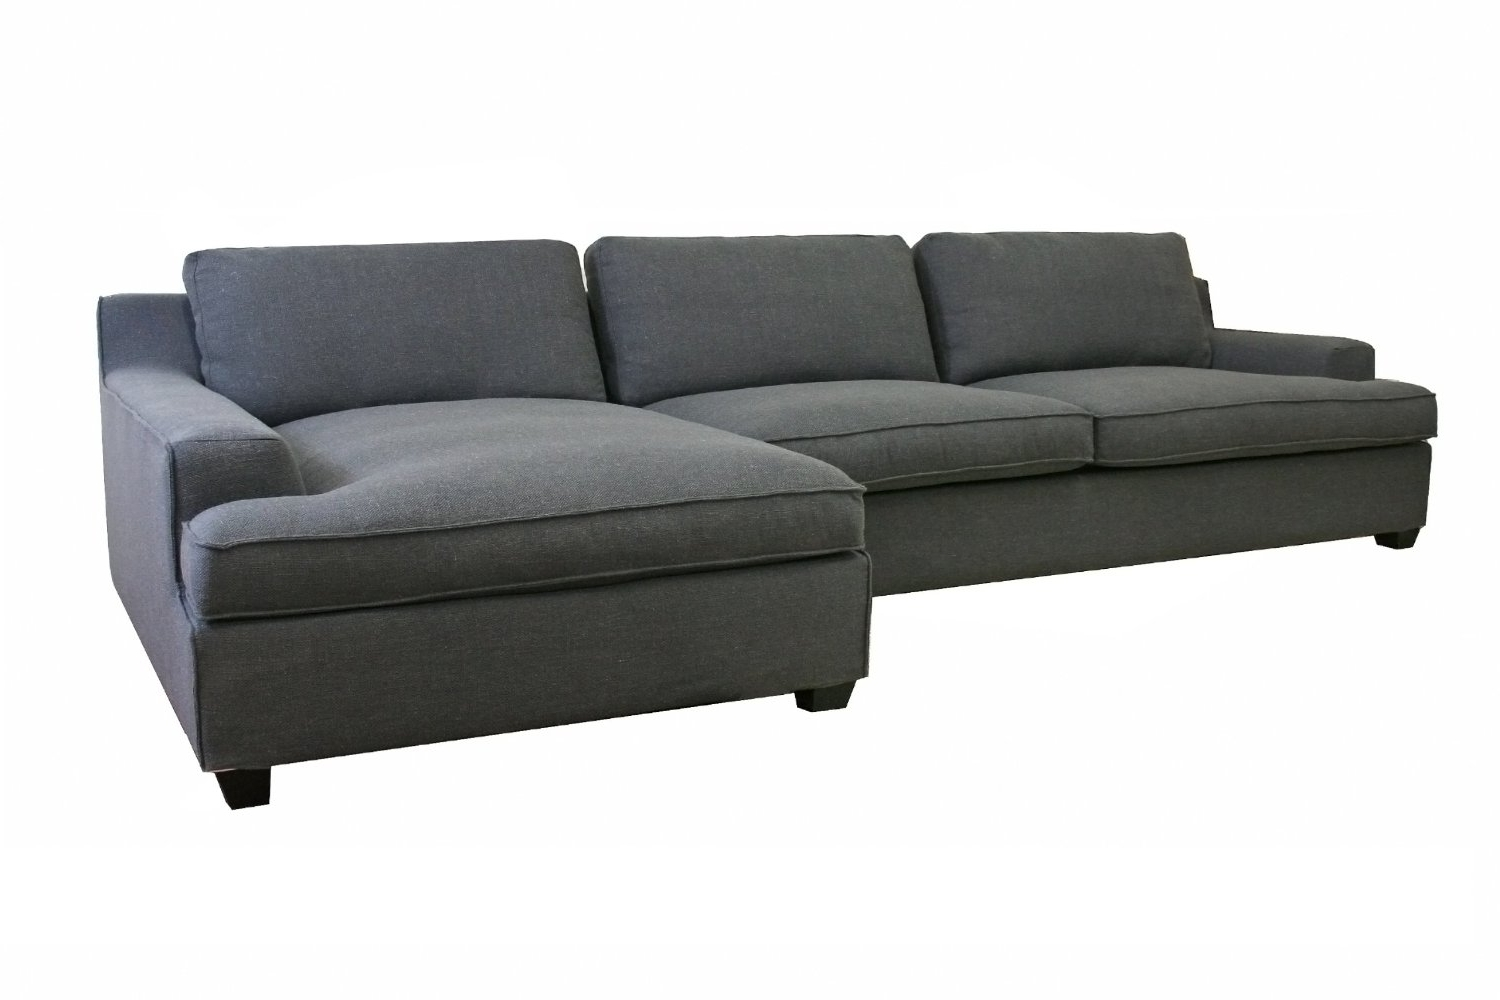 Favorite Sectional Sofa Design: Sleeper Sofa With Chaise Best Ever With Regard To Chaise Sleeper Sofas (View 7 of 15)